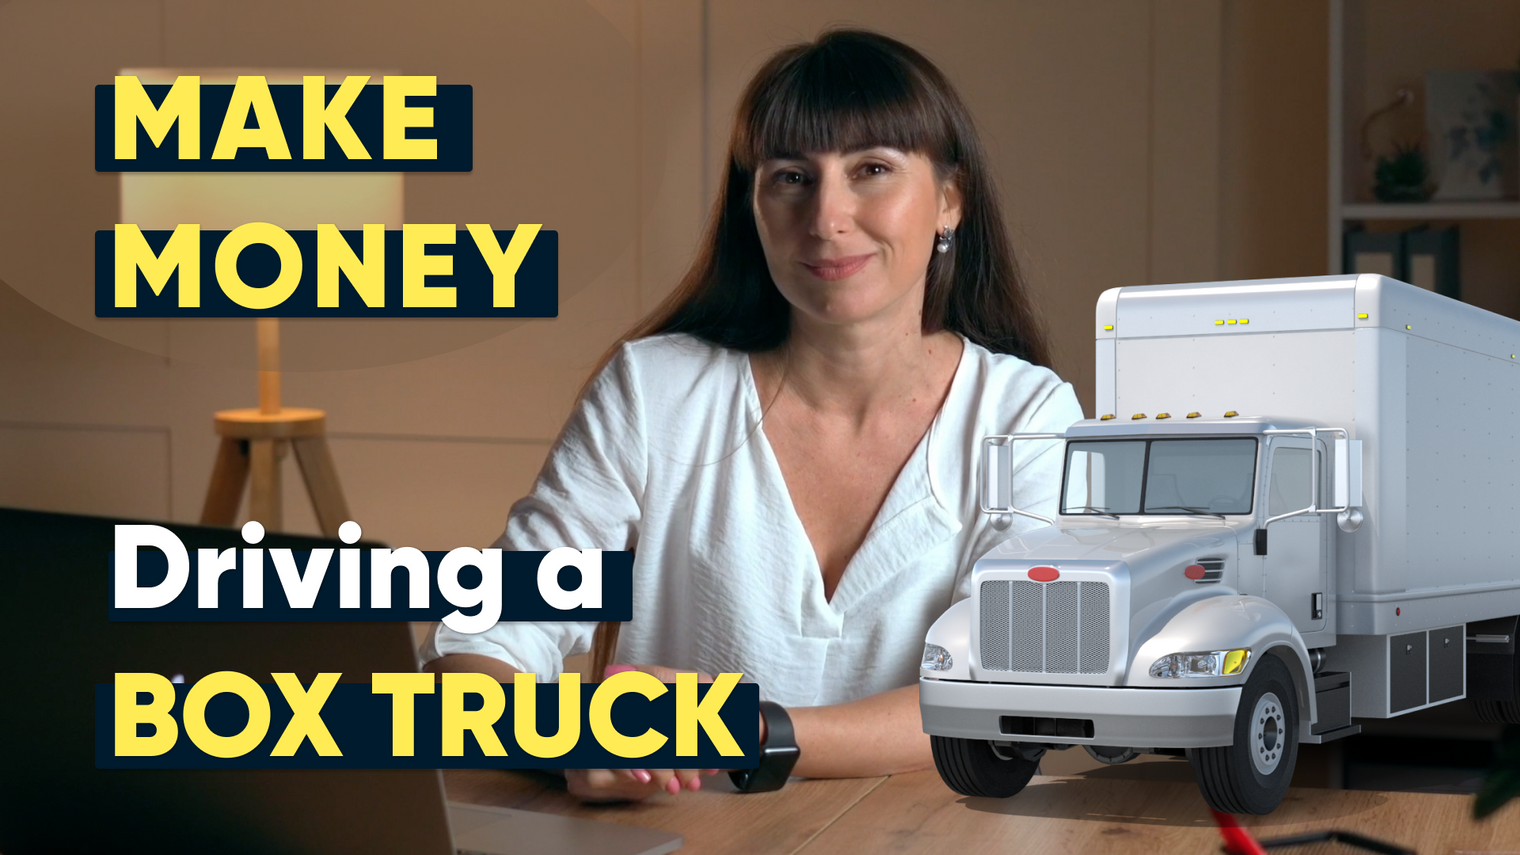 Make money driving a box truck